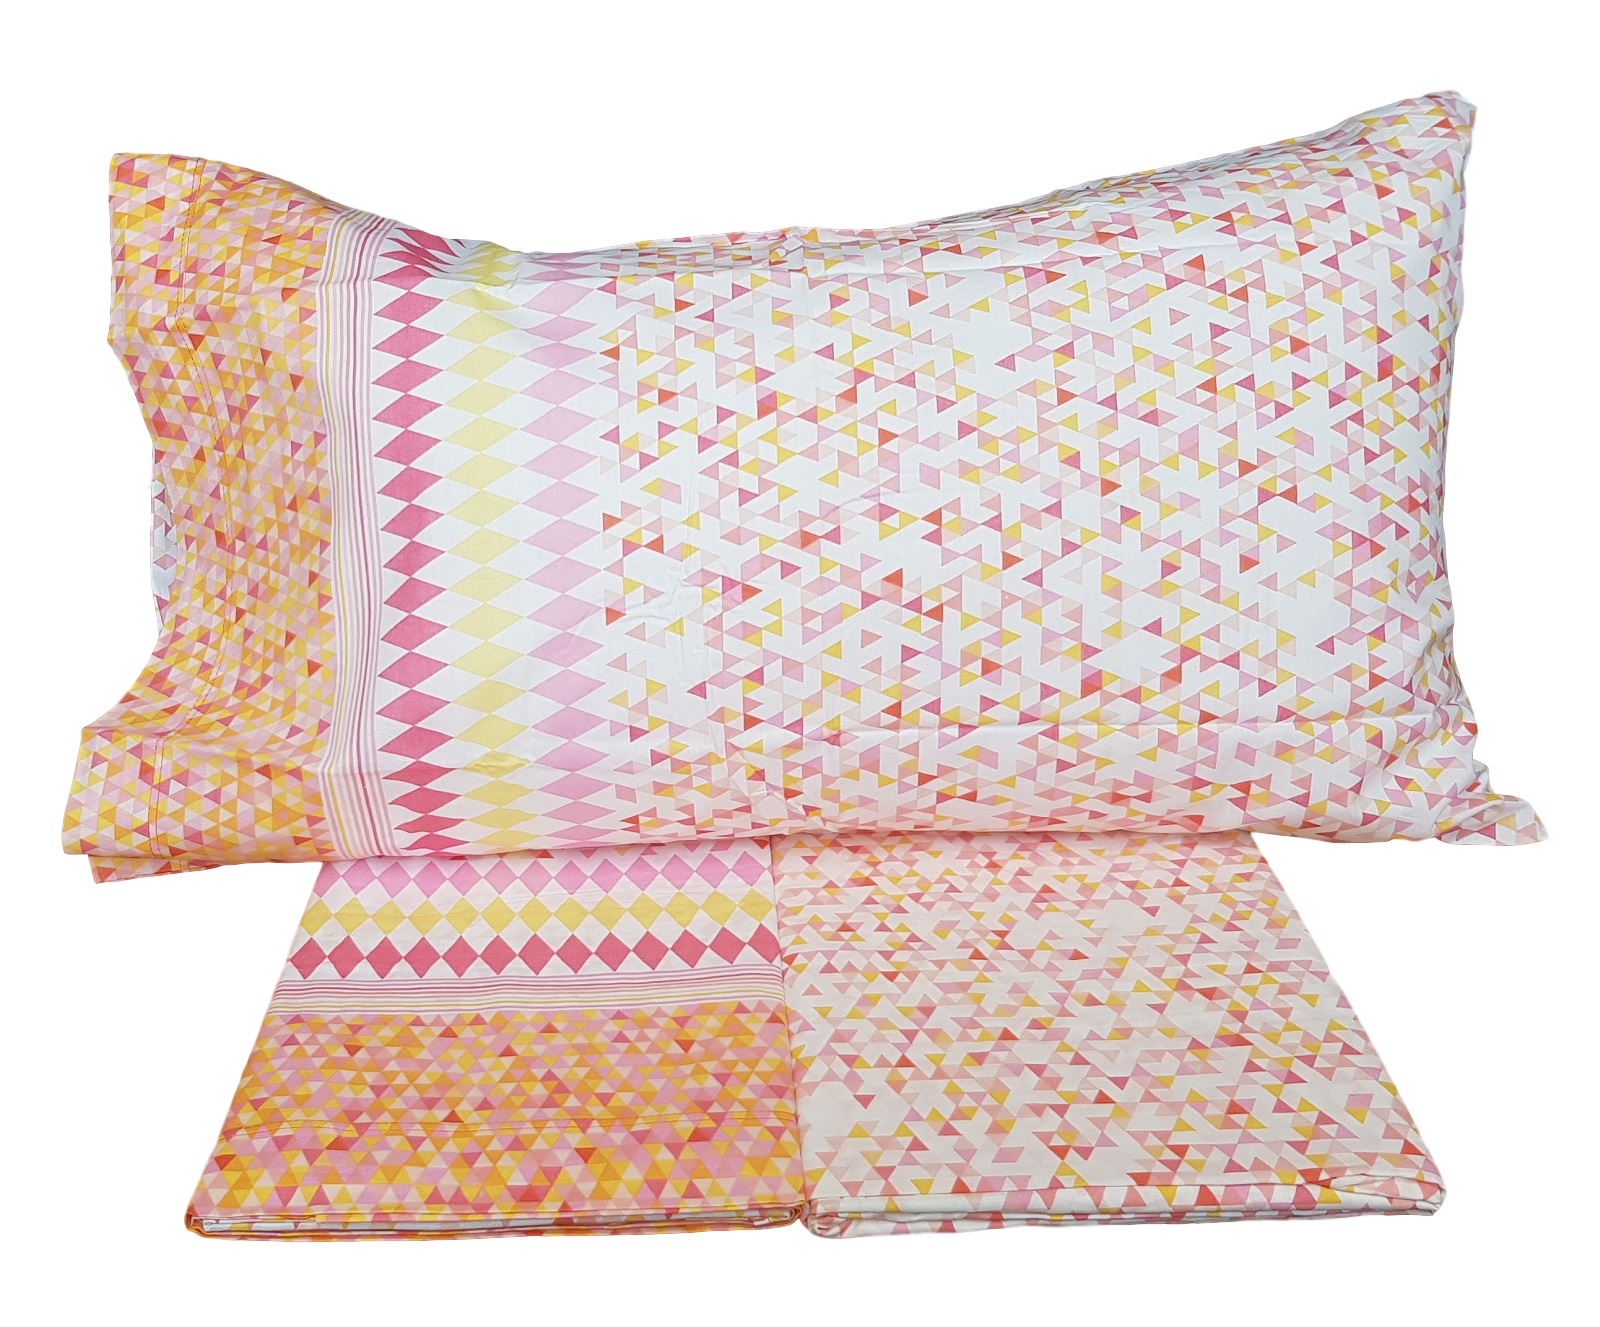 MAE' SEVENTHY Lenzuola completo set letto 100% Cotone 150/180 fili Made in Italy